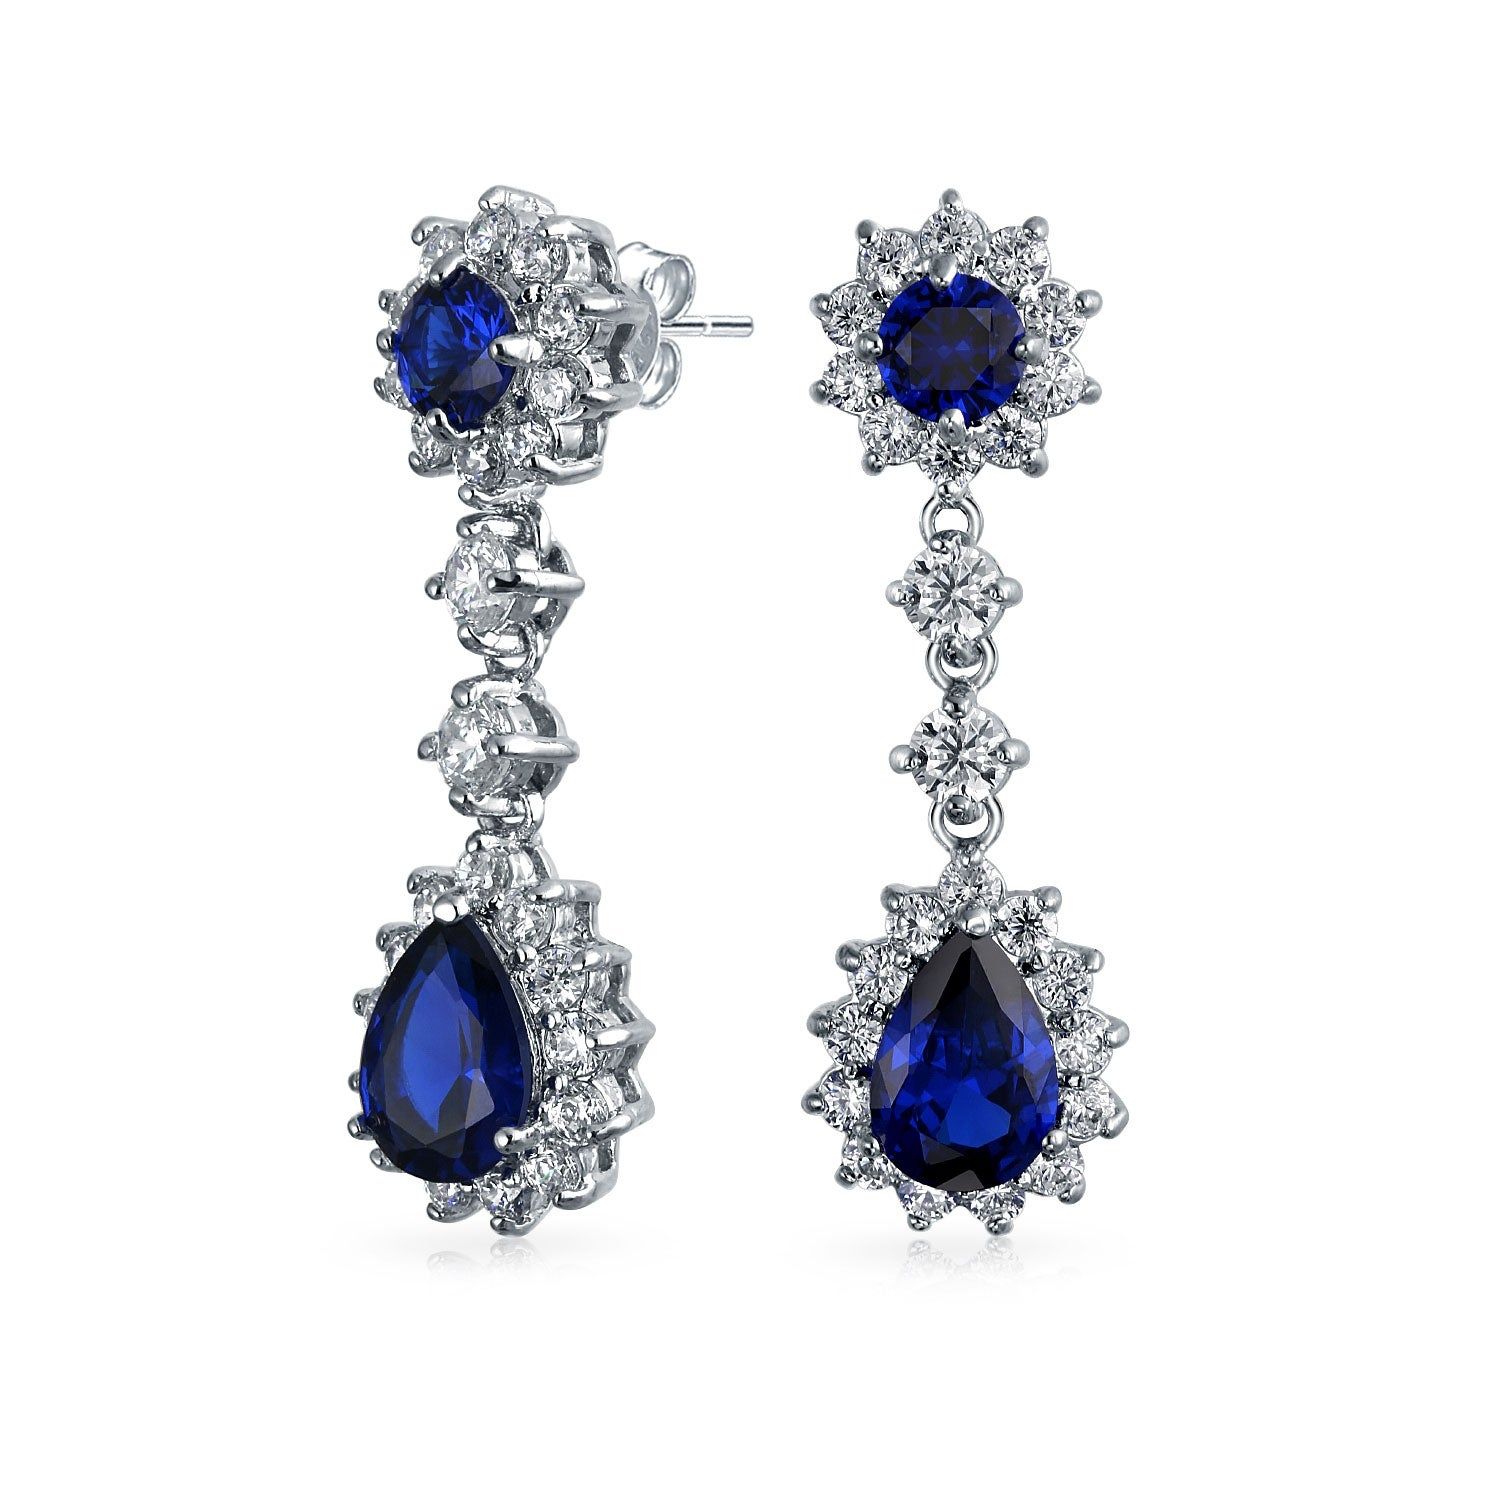 Crown Halo Royal Blue Cubic Zirconia Pear Shaped Teardrop Chandelier Earrings Cz Imitation Sapphire Silver Plated Brass With Regard To Current Sparkling Teardrop Chandelier Pendant Necklaces (View 17 of 25)